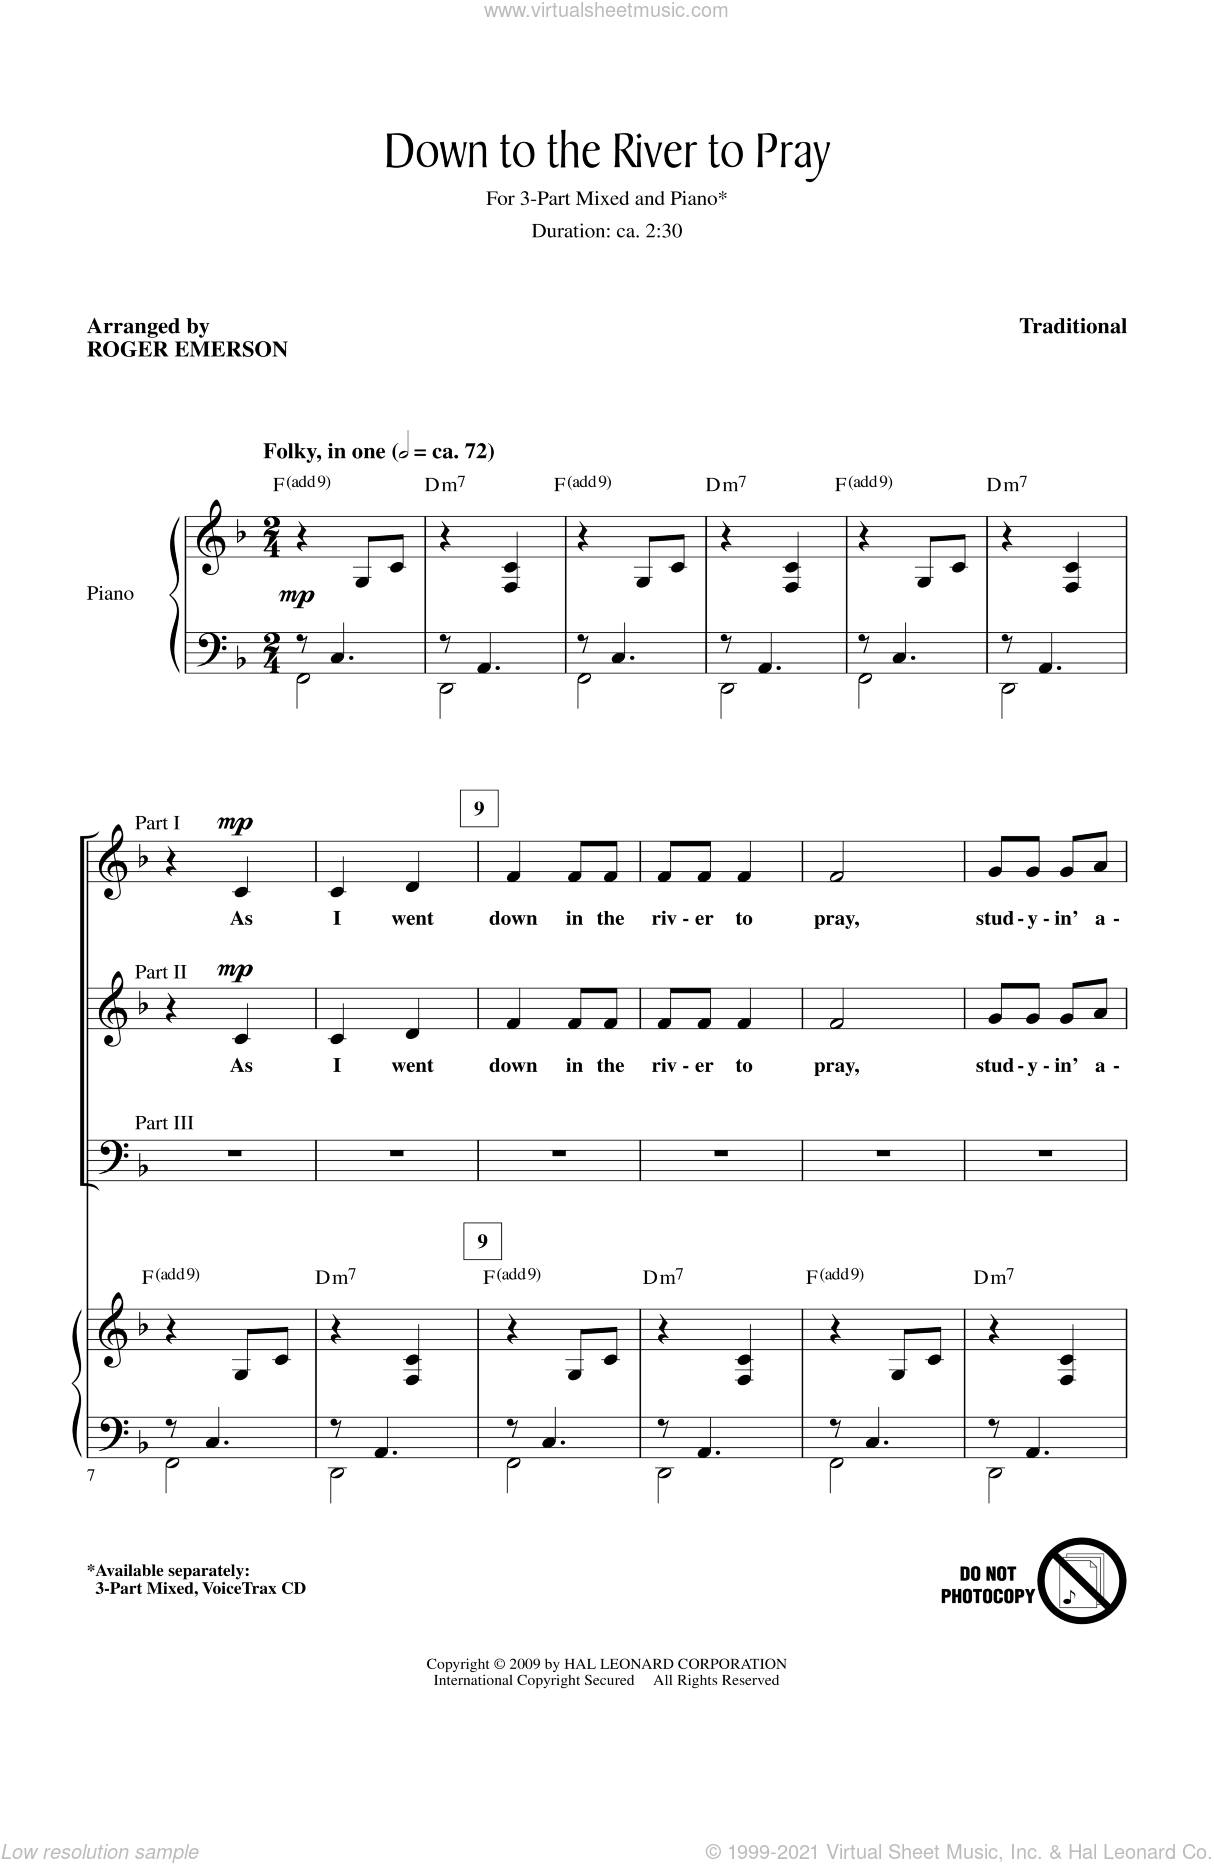 Down To The River To Pray sheet music for choir (3-Part Mixed) by Roger Emerson, intermediate skill level